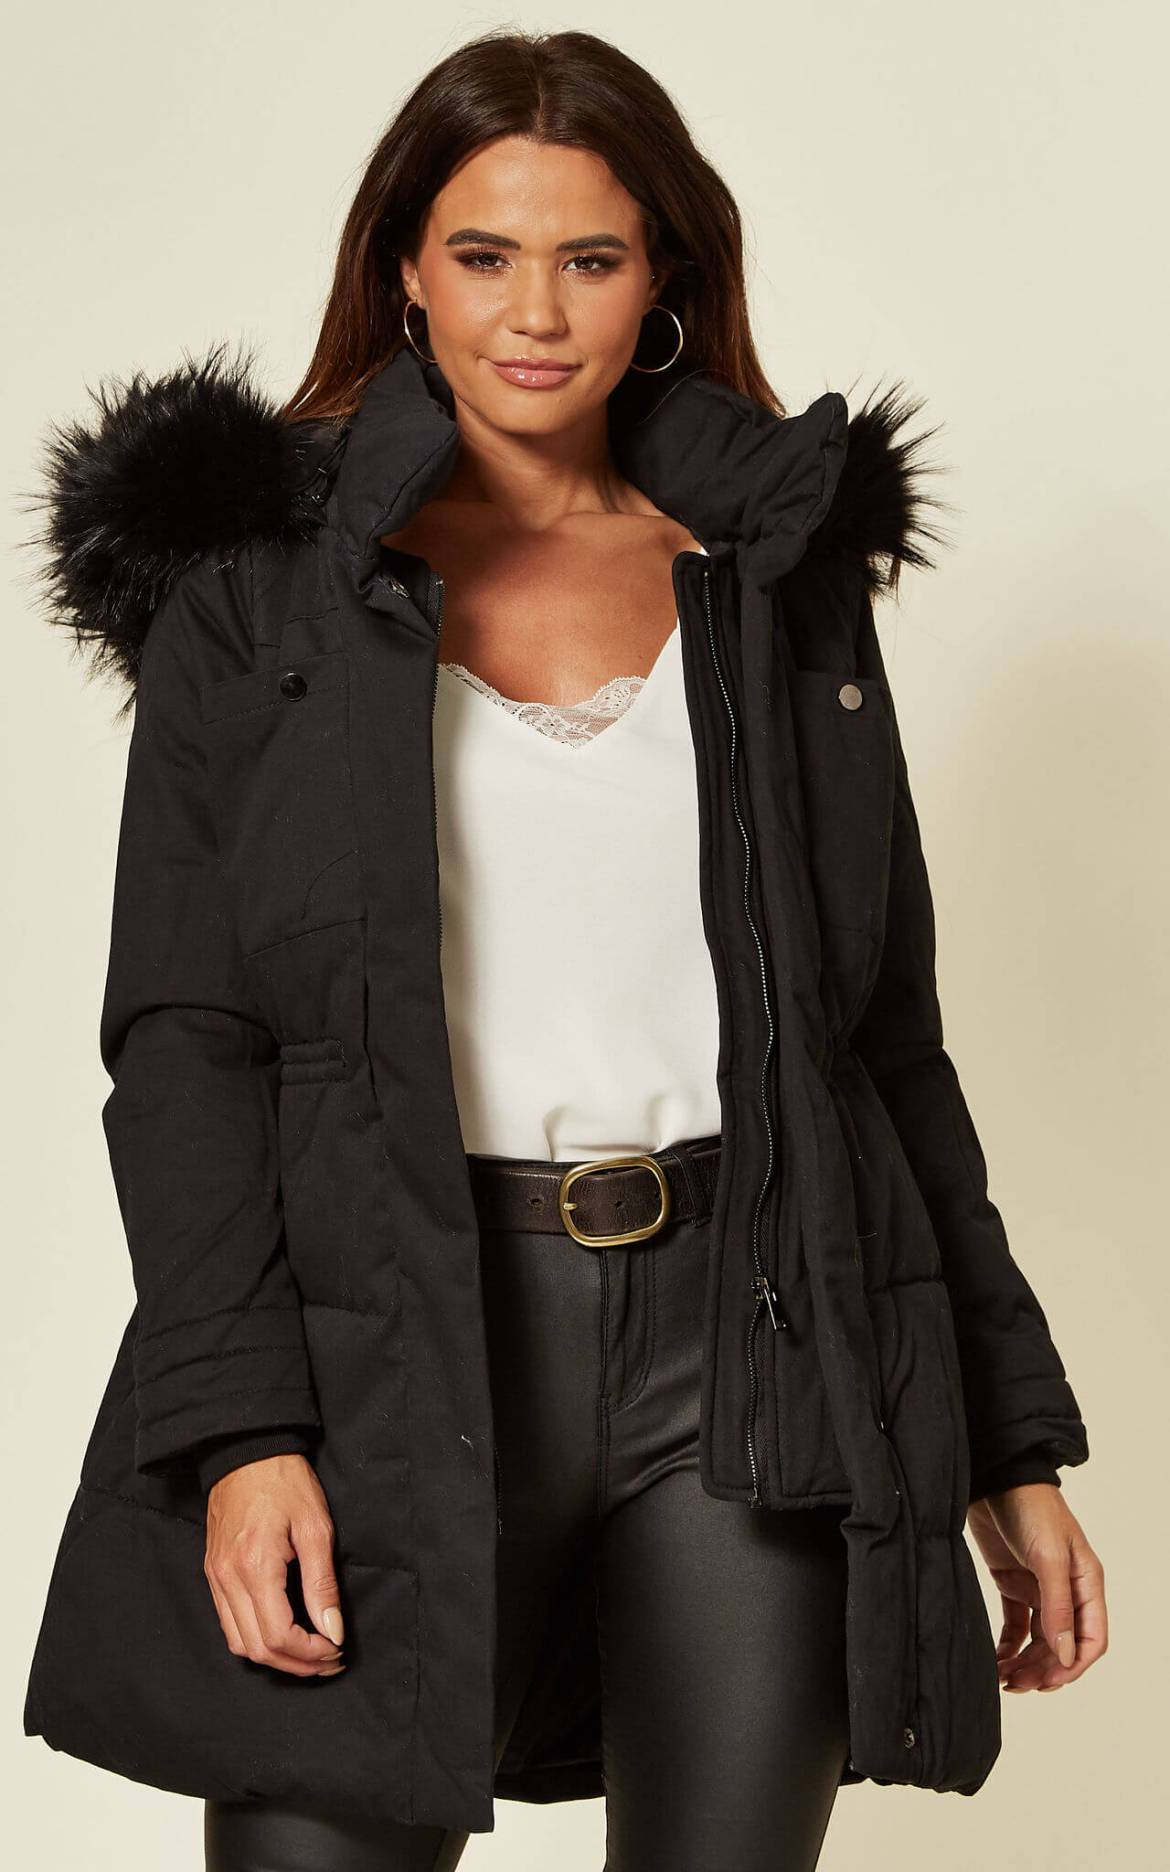 Model wears black parka over white t-shirt and jeans